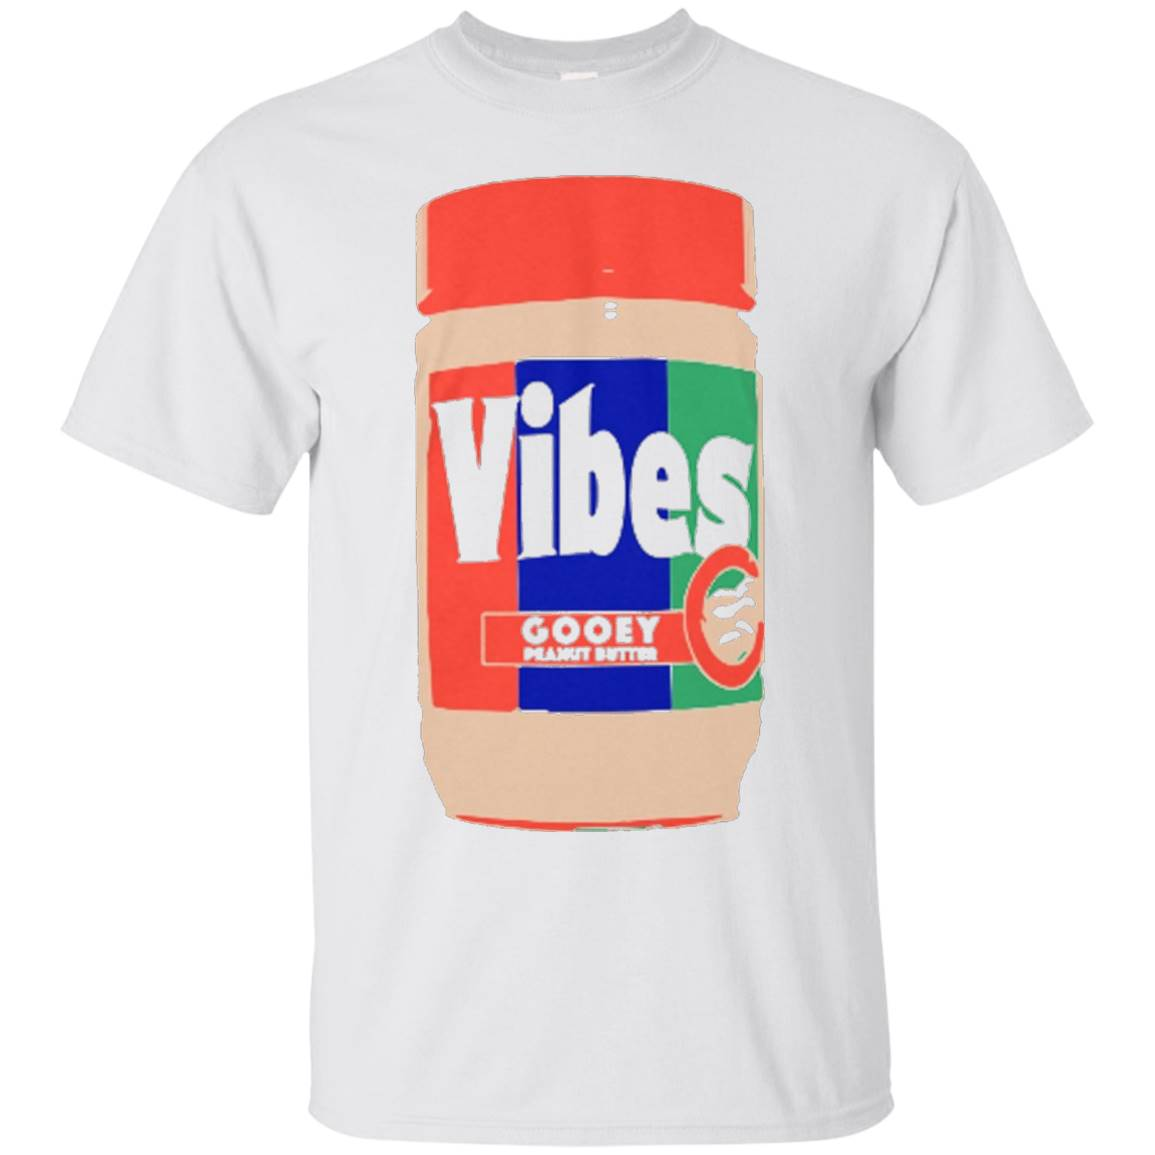 Peanut Butter Vibes – T Shirt for Peanut Butter lovers